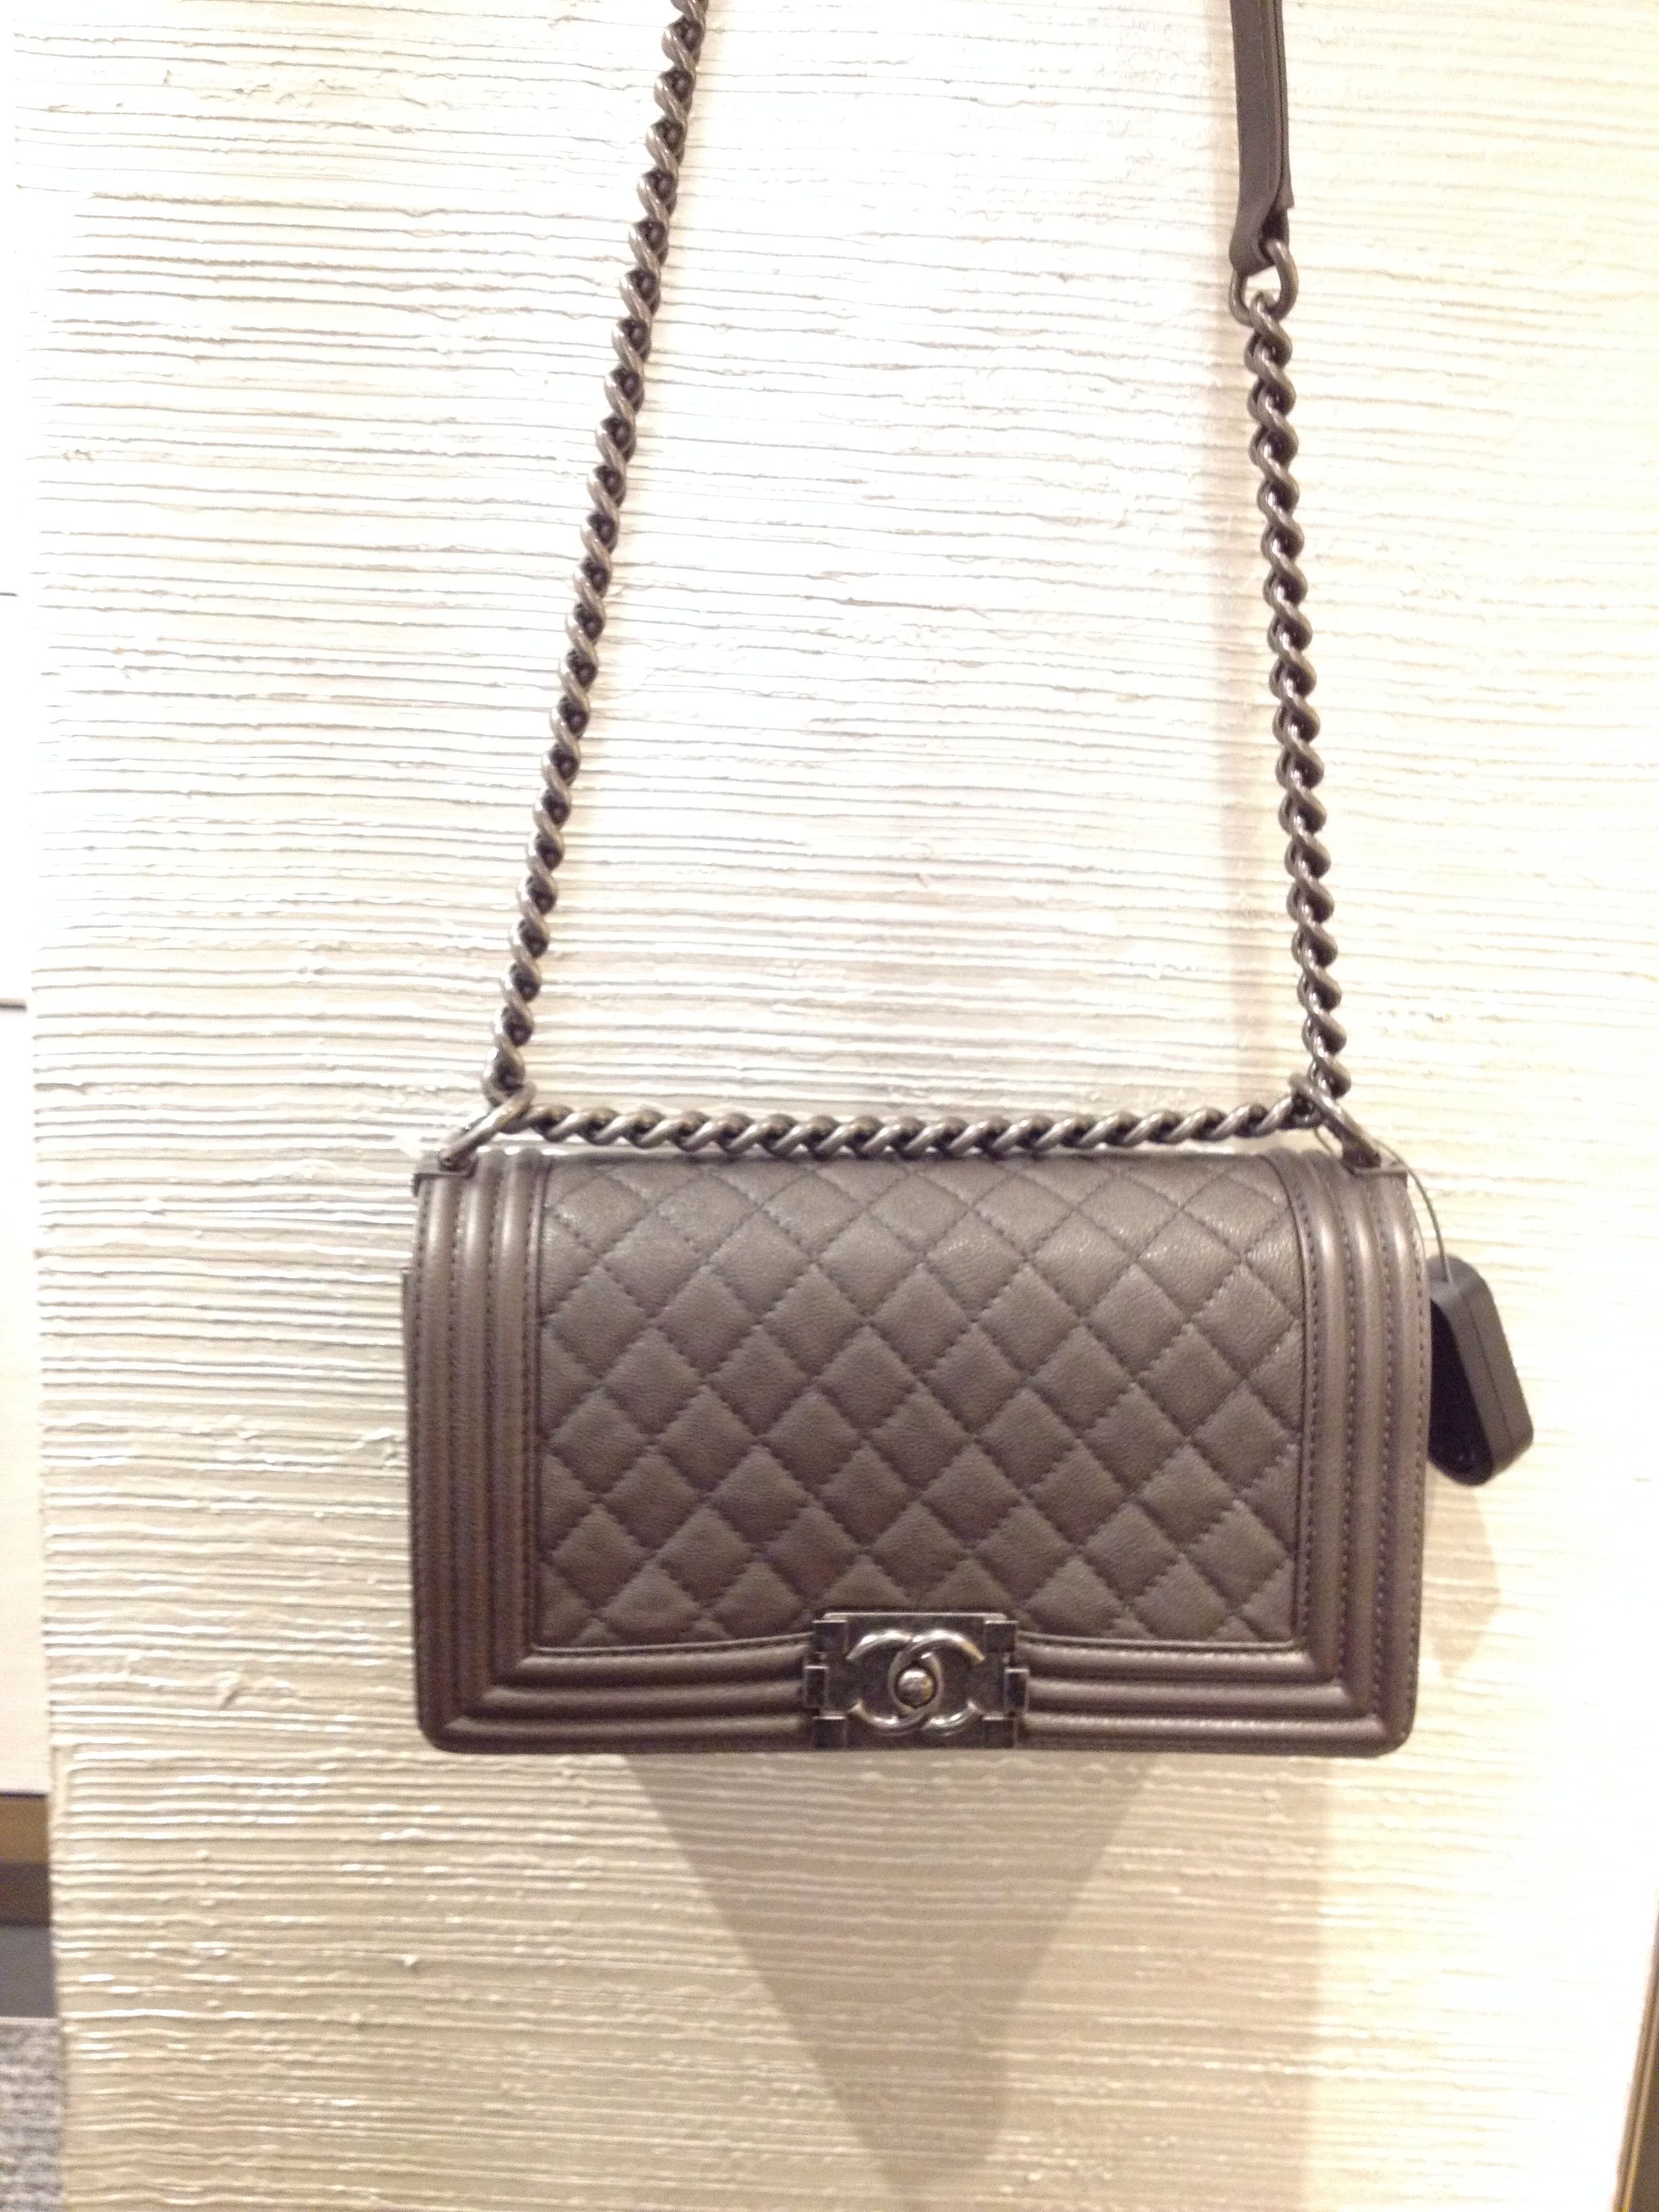 eb8c1d7e4f2e Dark grey calf le boy bag 2013 - Bergdorf reserved for me!! | BAGS ...